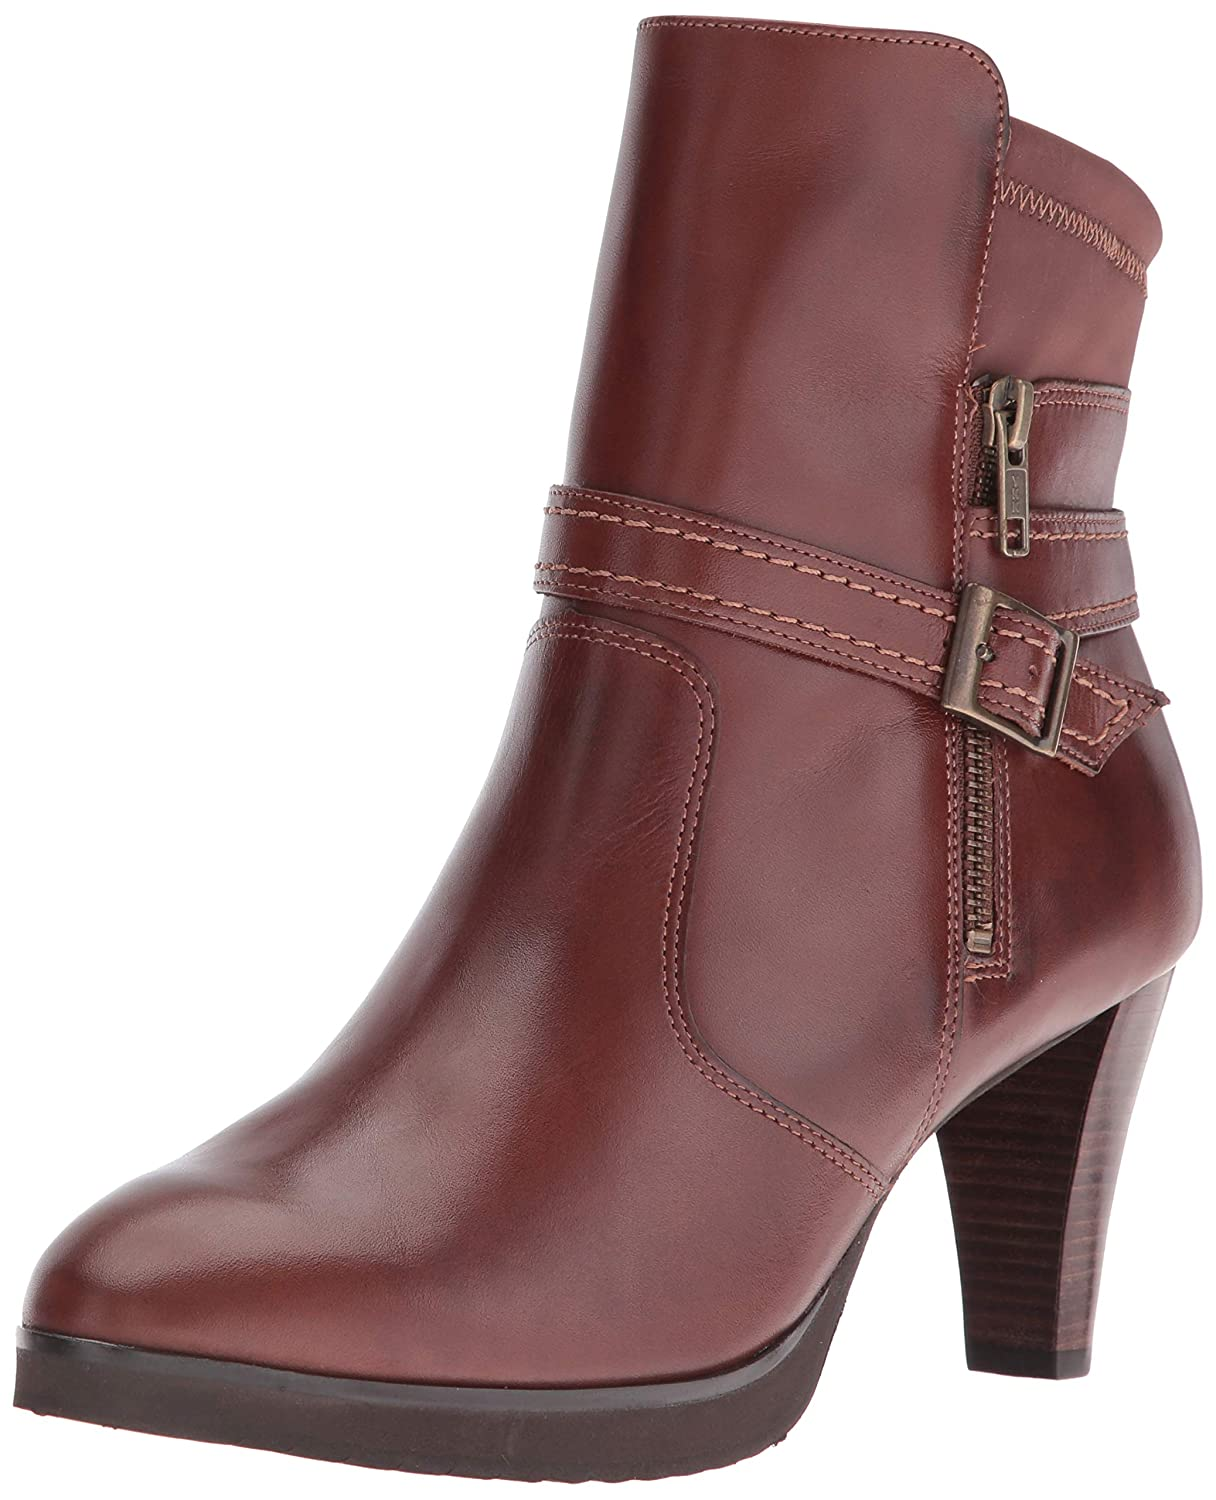 Cradles Women's Women's Boot Tacoma Tacoma Cradles Walking Walking Tacoma Walking Women's Cradles Boot NnO0wvm8